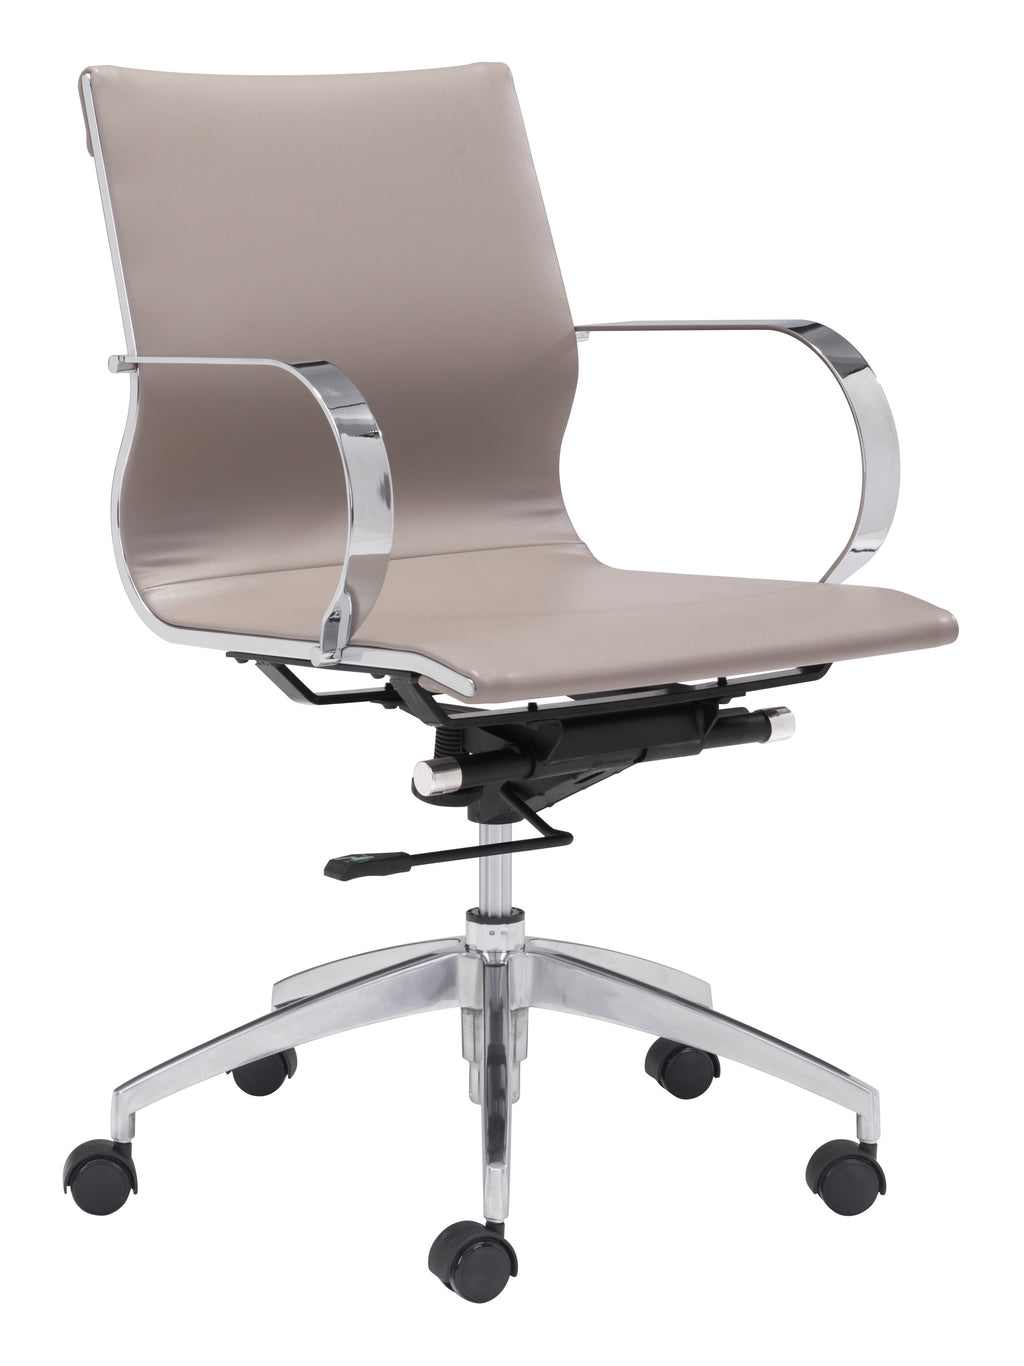 Glider Low Back Office Chair (Taupe)